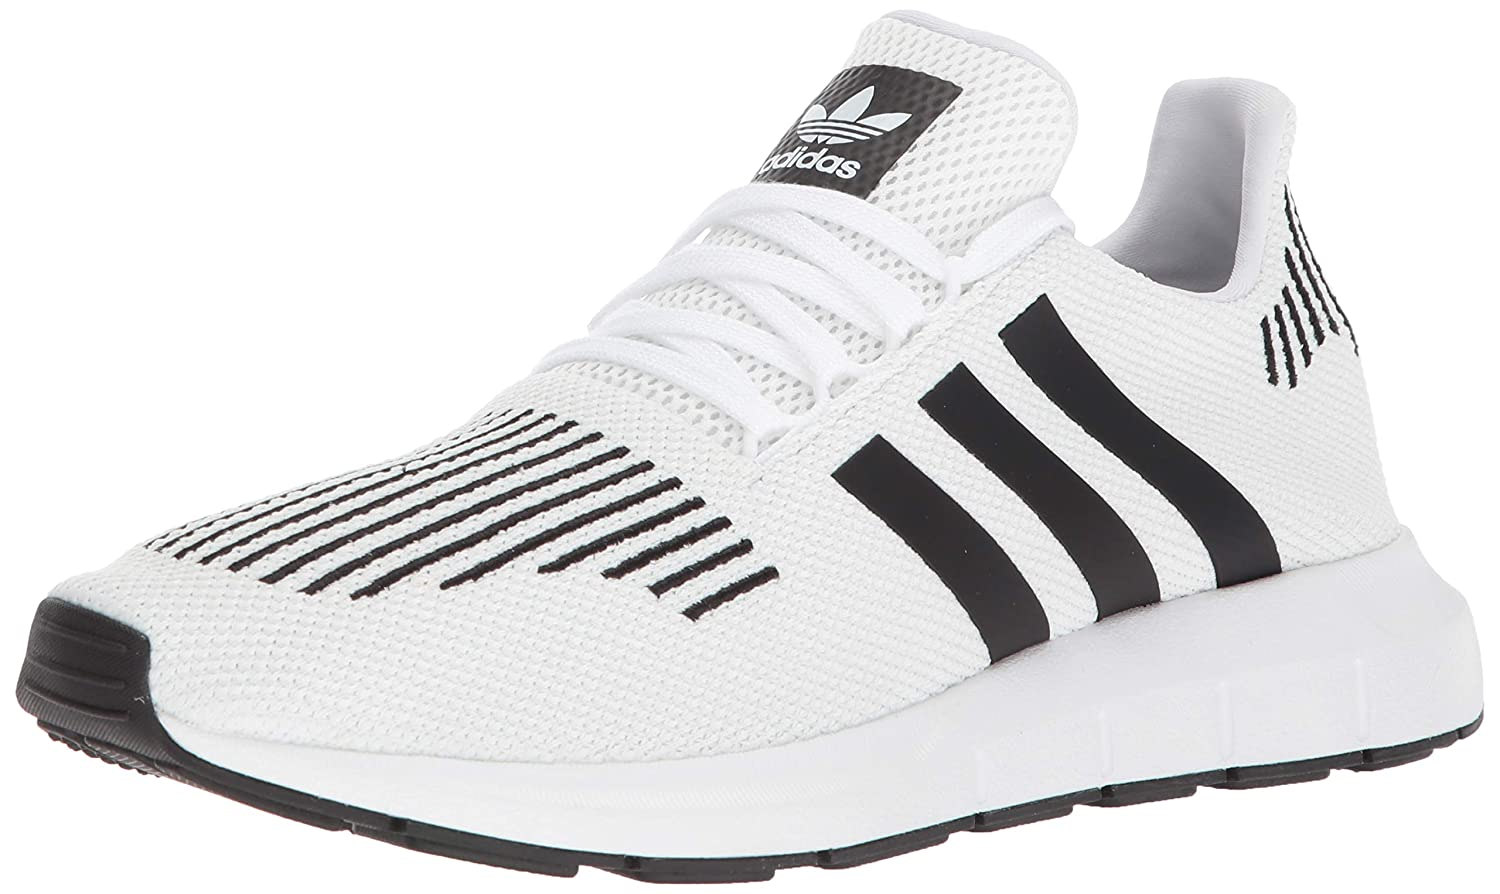 Adidas Swift Run - CQ2116 - Größe 8 -